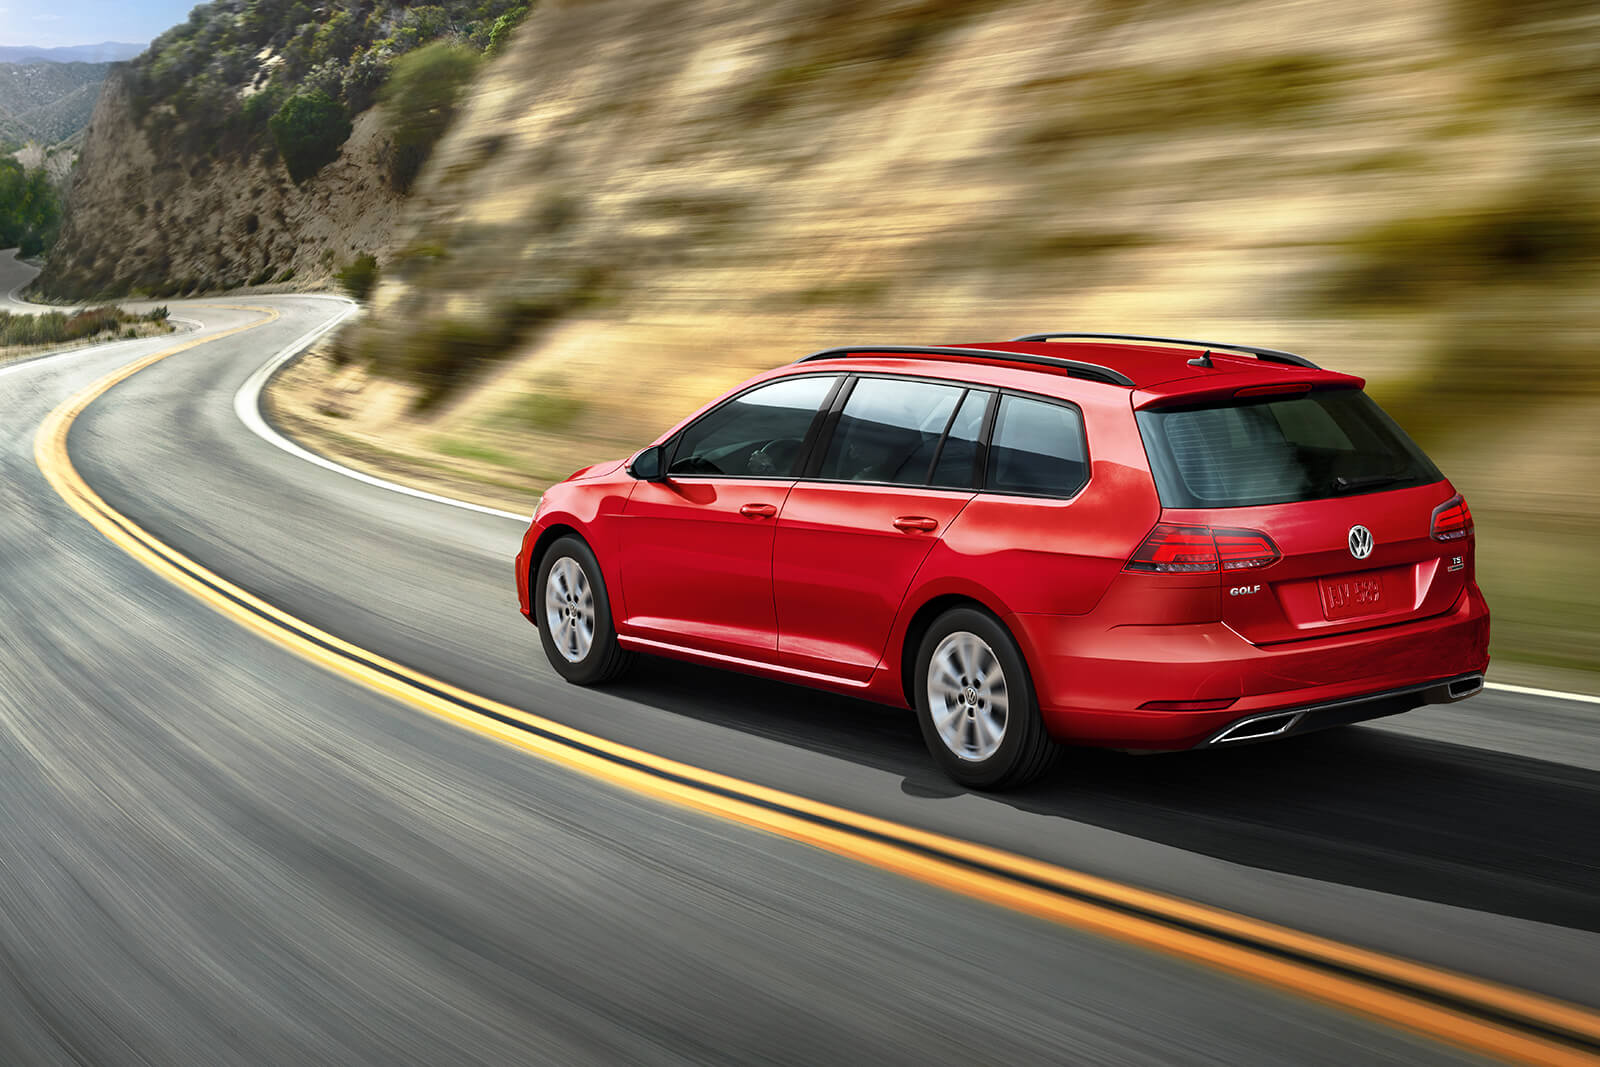 2018 Volkswagen Golf SportWagen Driving Red Exterior